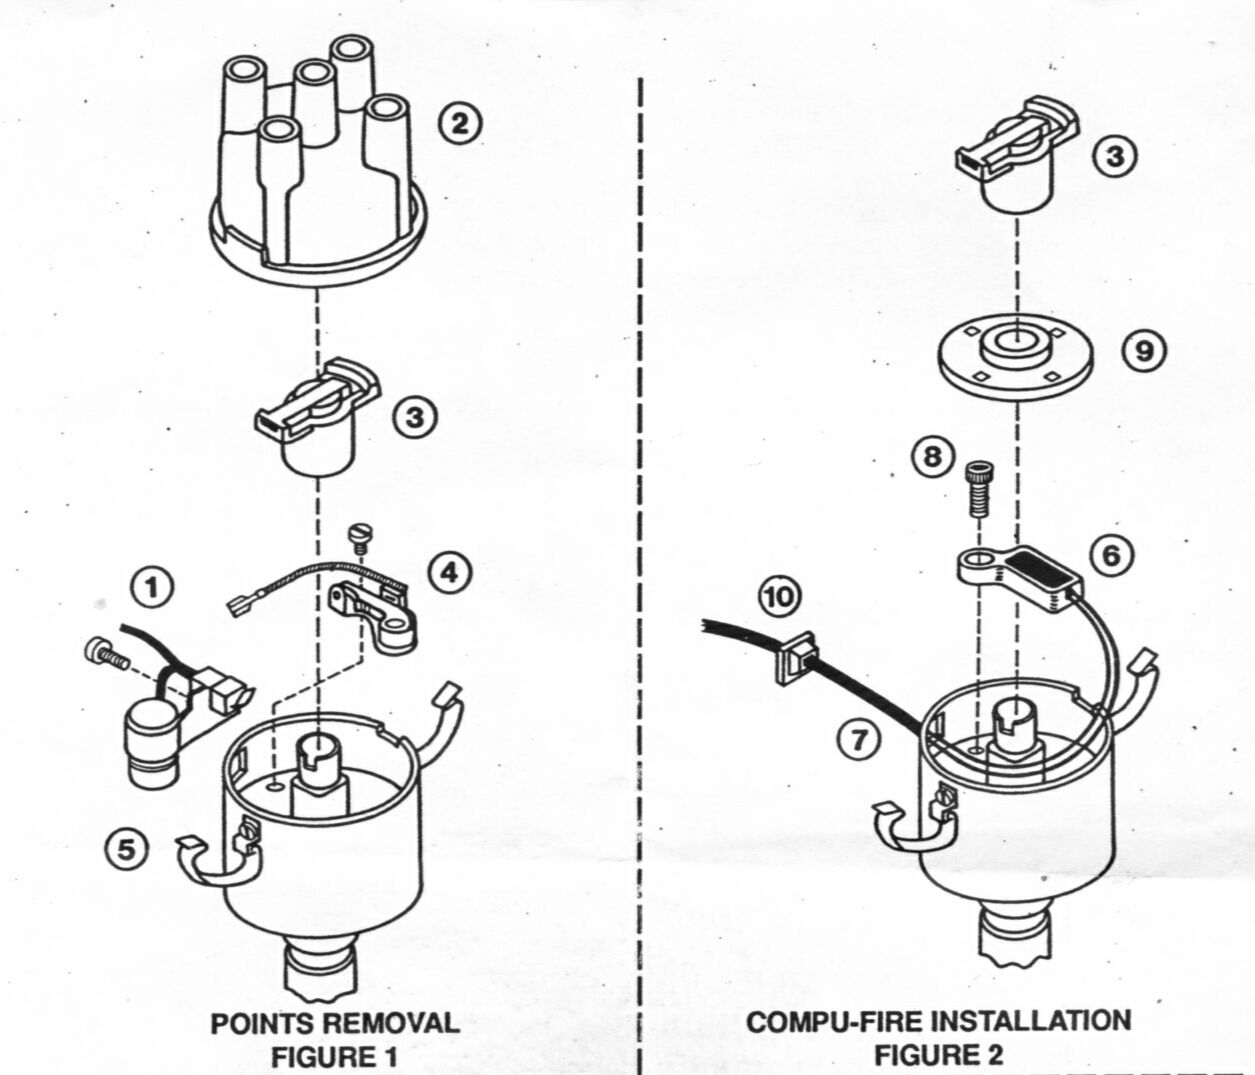 Electronic Ignition Distributor Wiring Diagram : 46 Wiring